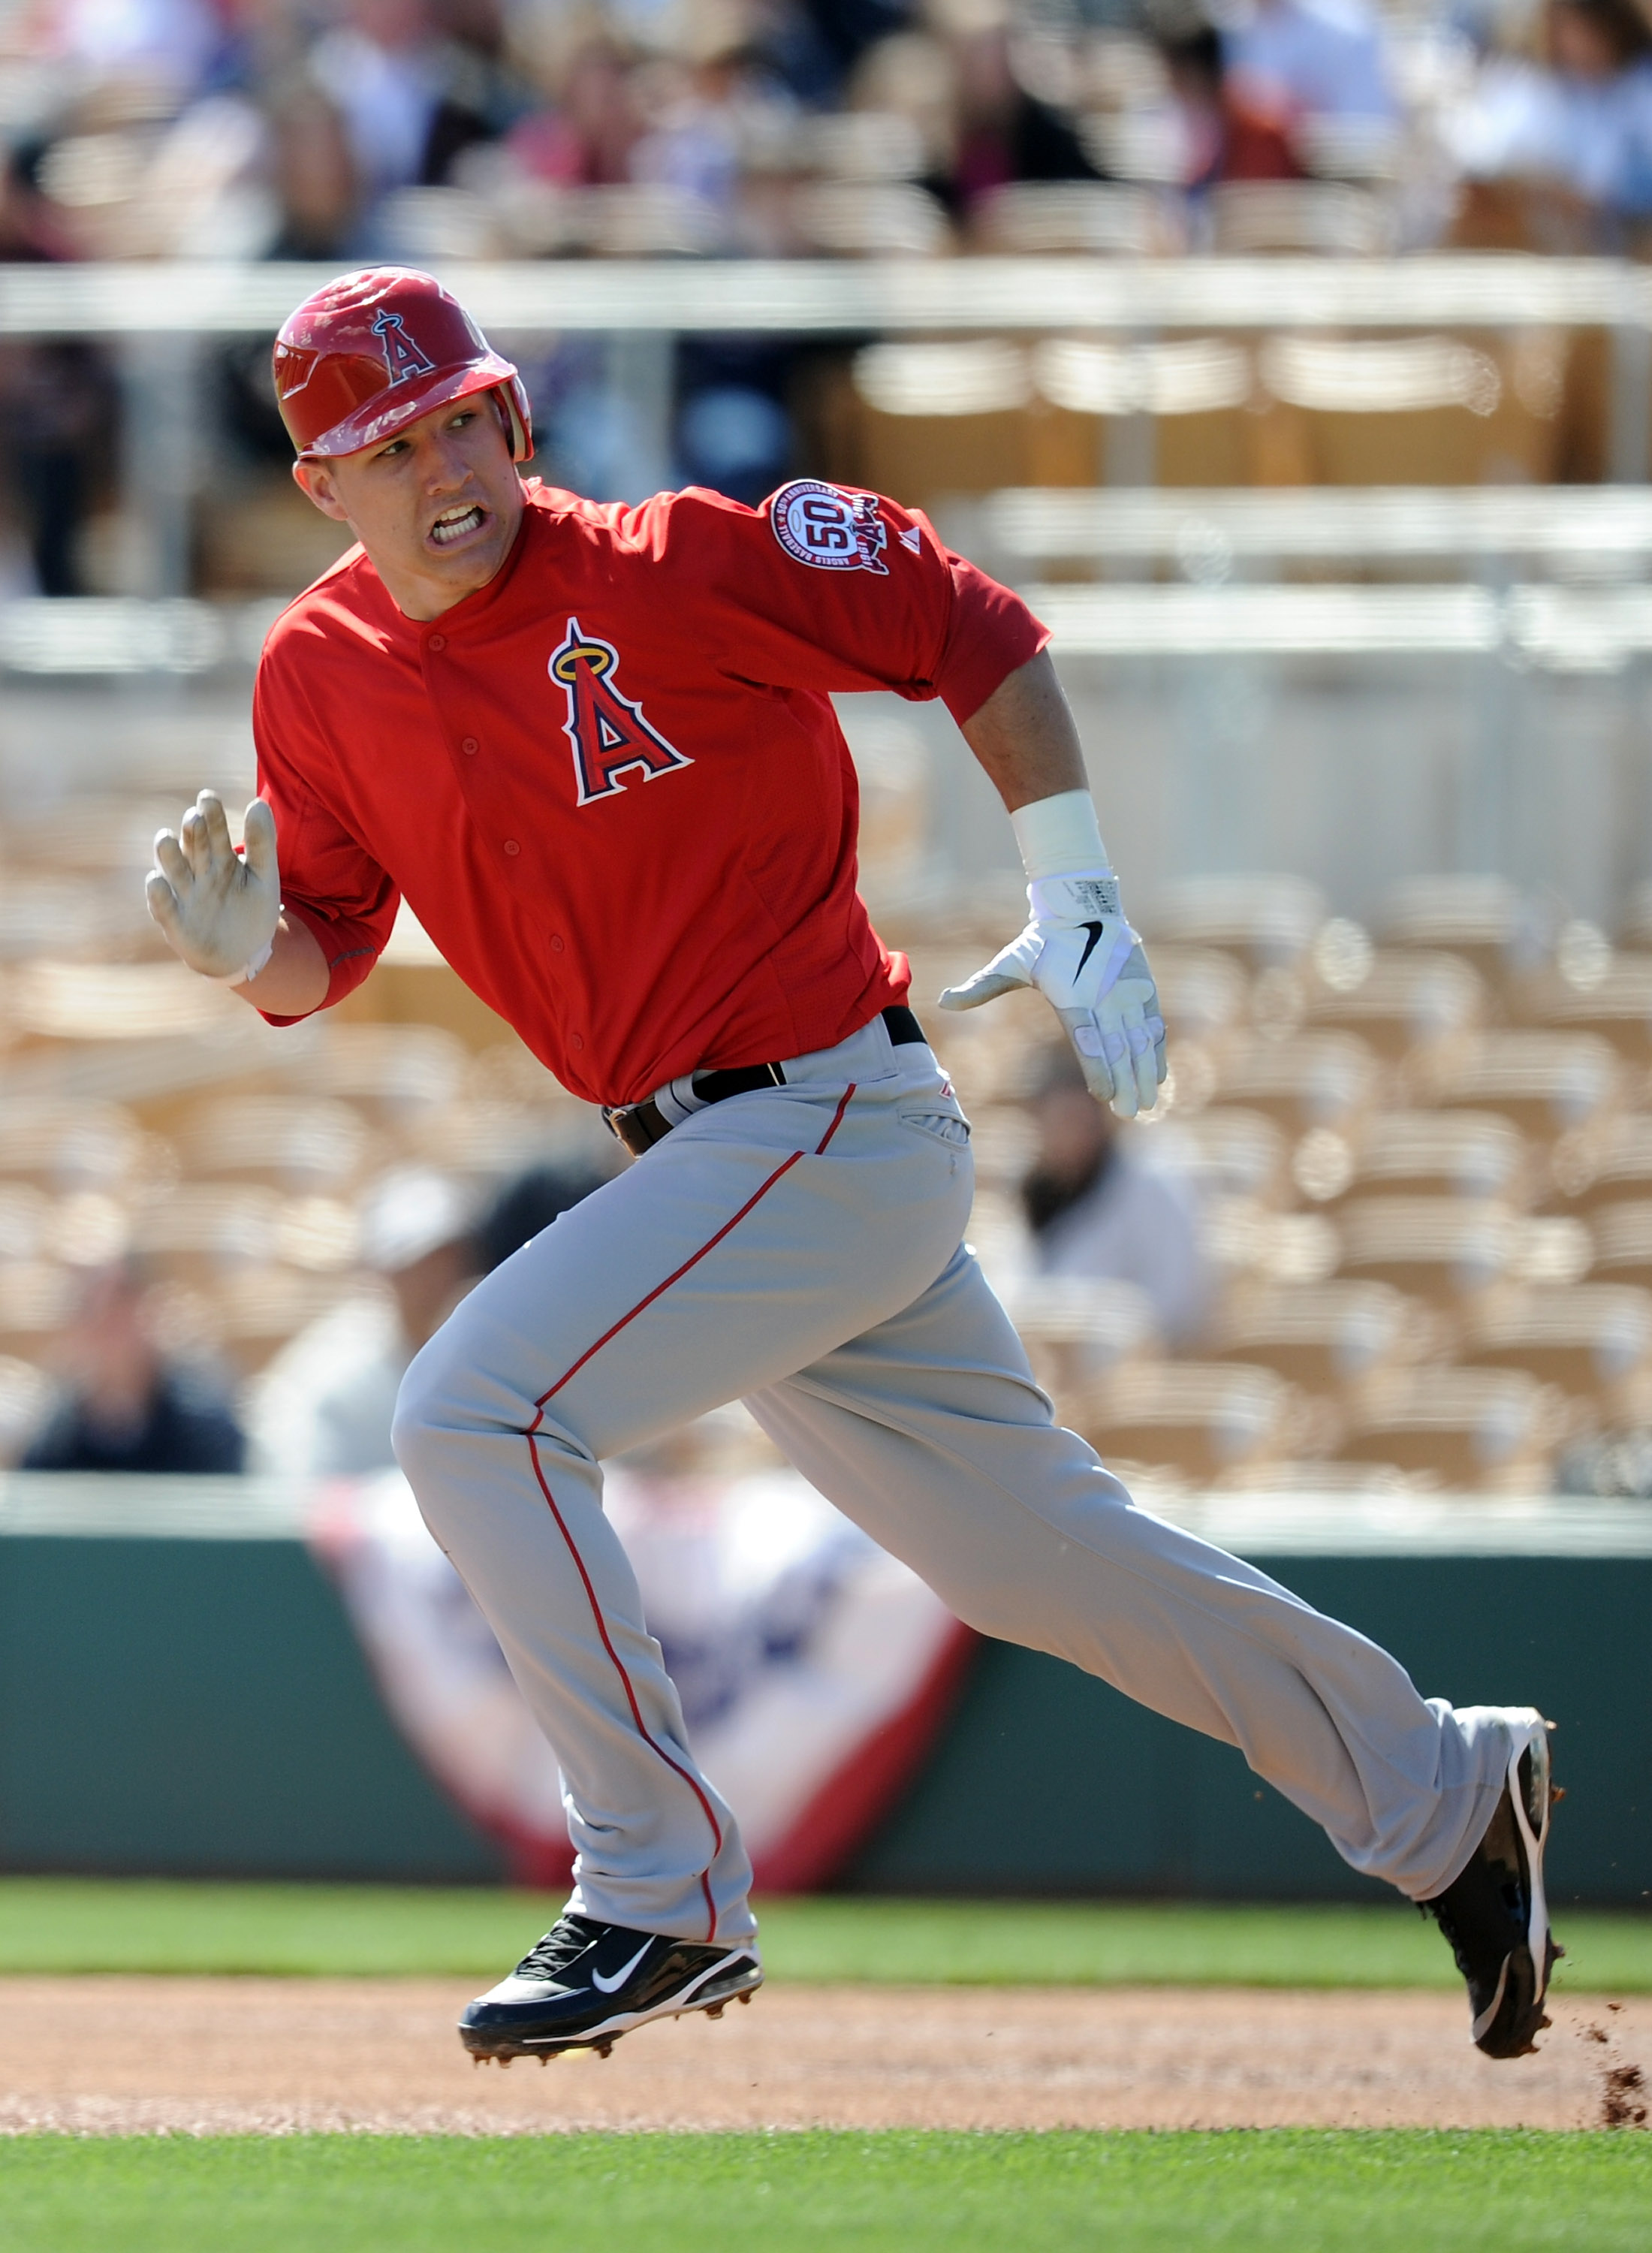 PHOENIX, AZ - FEBRUARY 27:  Mike Trout #90 of the Los Angeles Angels of Anaheim runs to second base against the Los Angeles Dodgers during spring training at Camelback Ranch on February 27, 2011 in Phoenix, Arizona.  (Photo by Harry How/Getty Images)